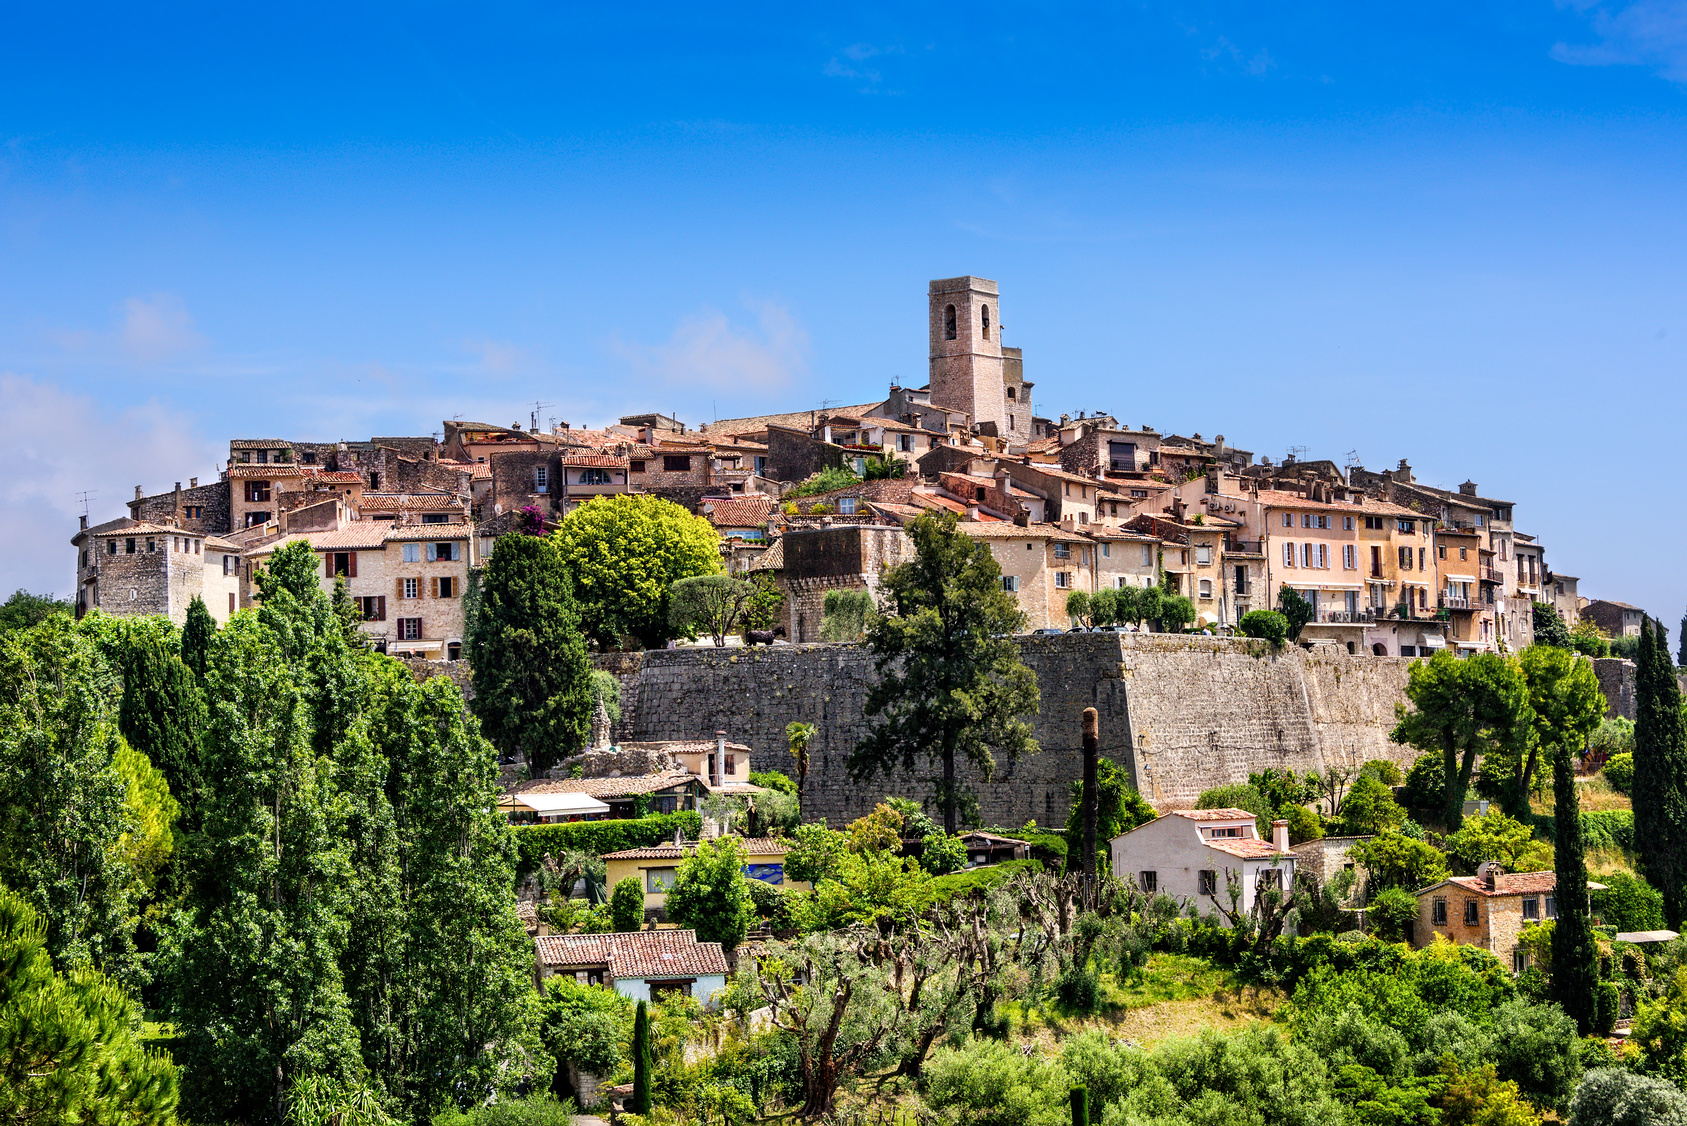 Saint Paul de Vence, a medieval village in France